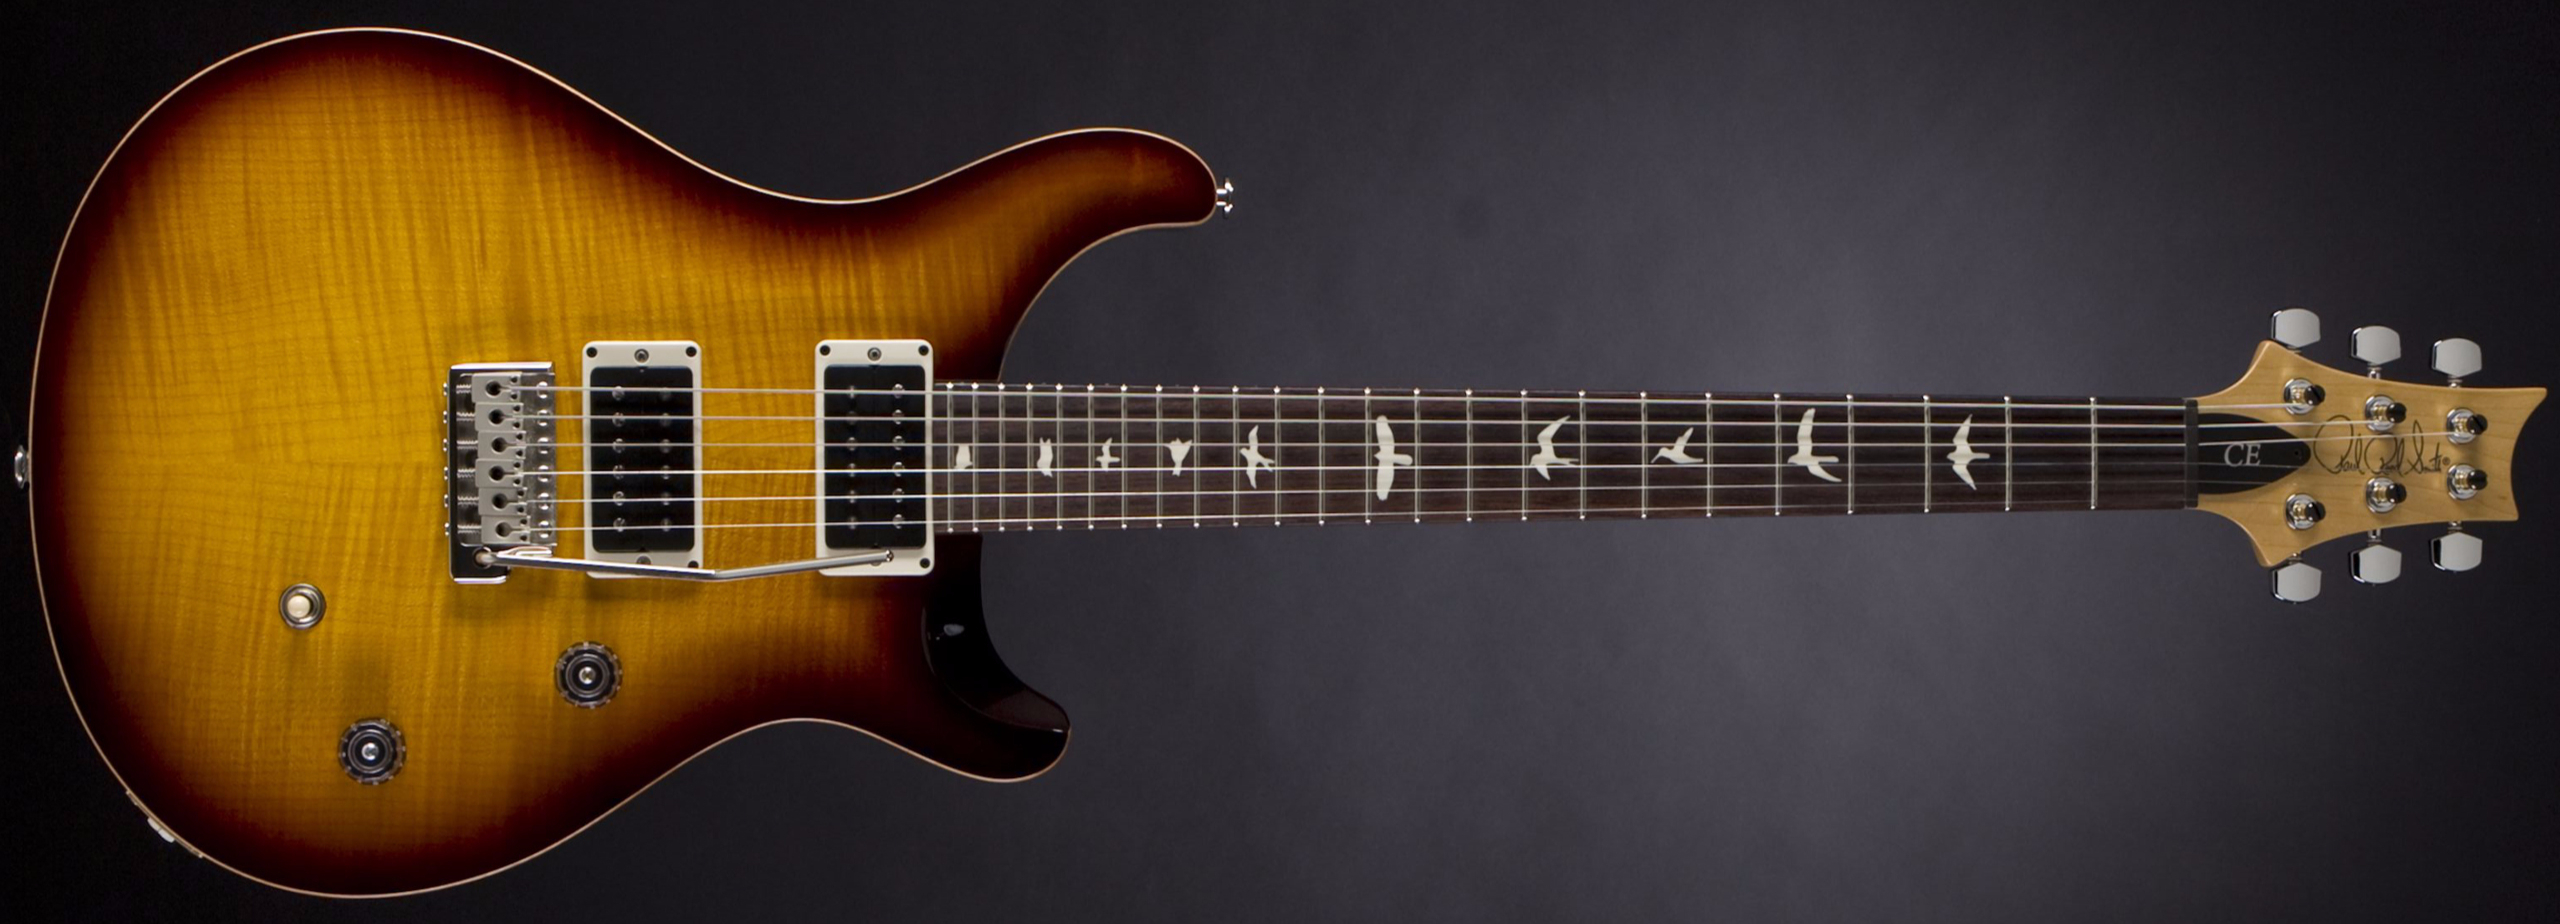 PRS CE 24 McCarty Tobacco Sunburst